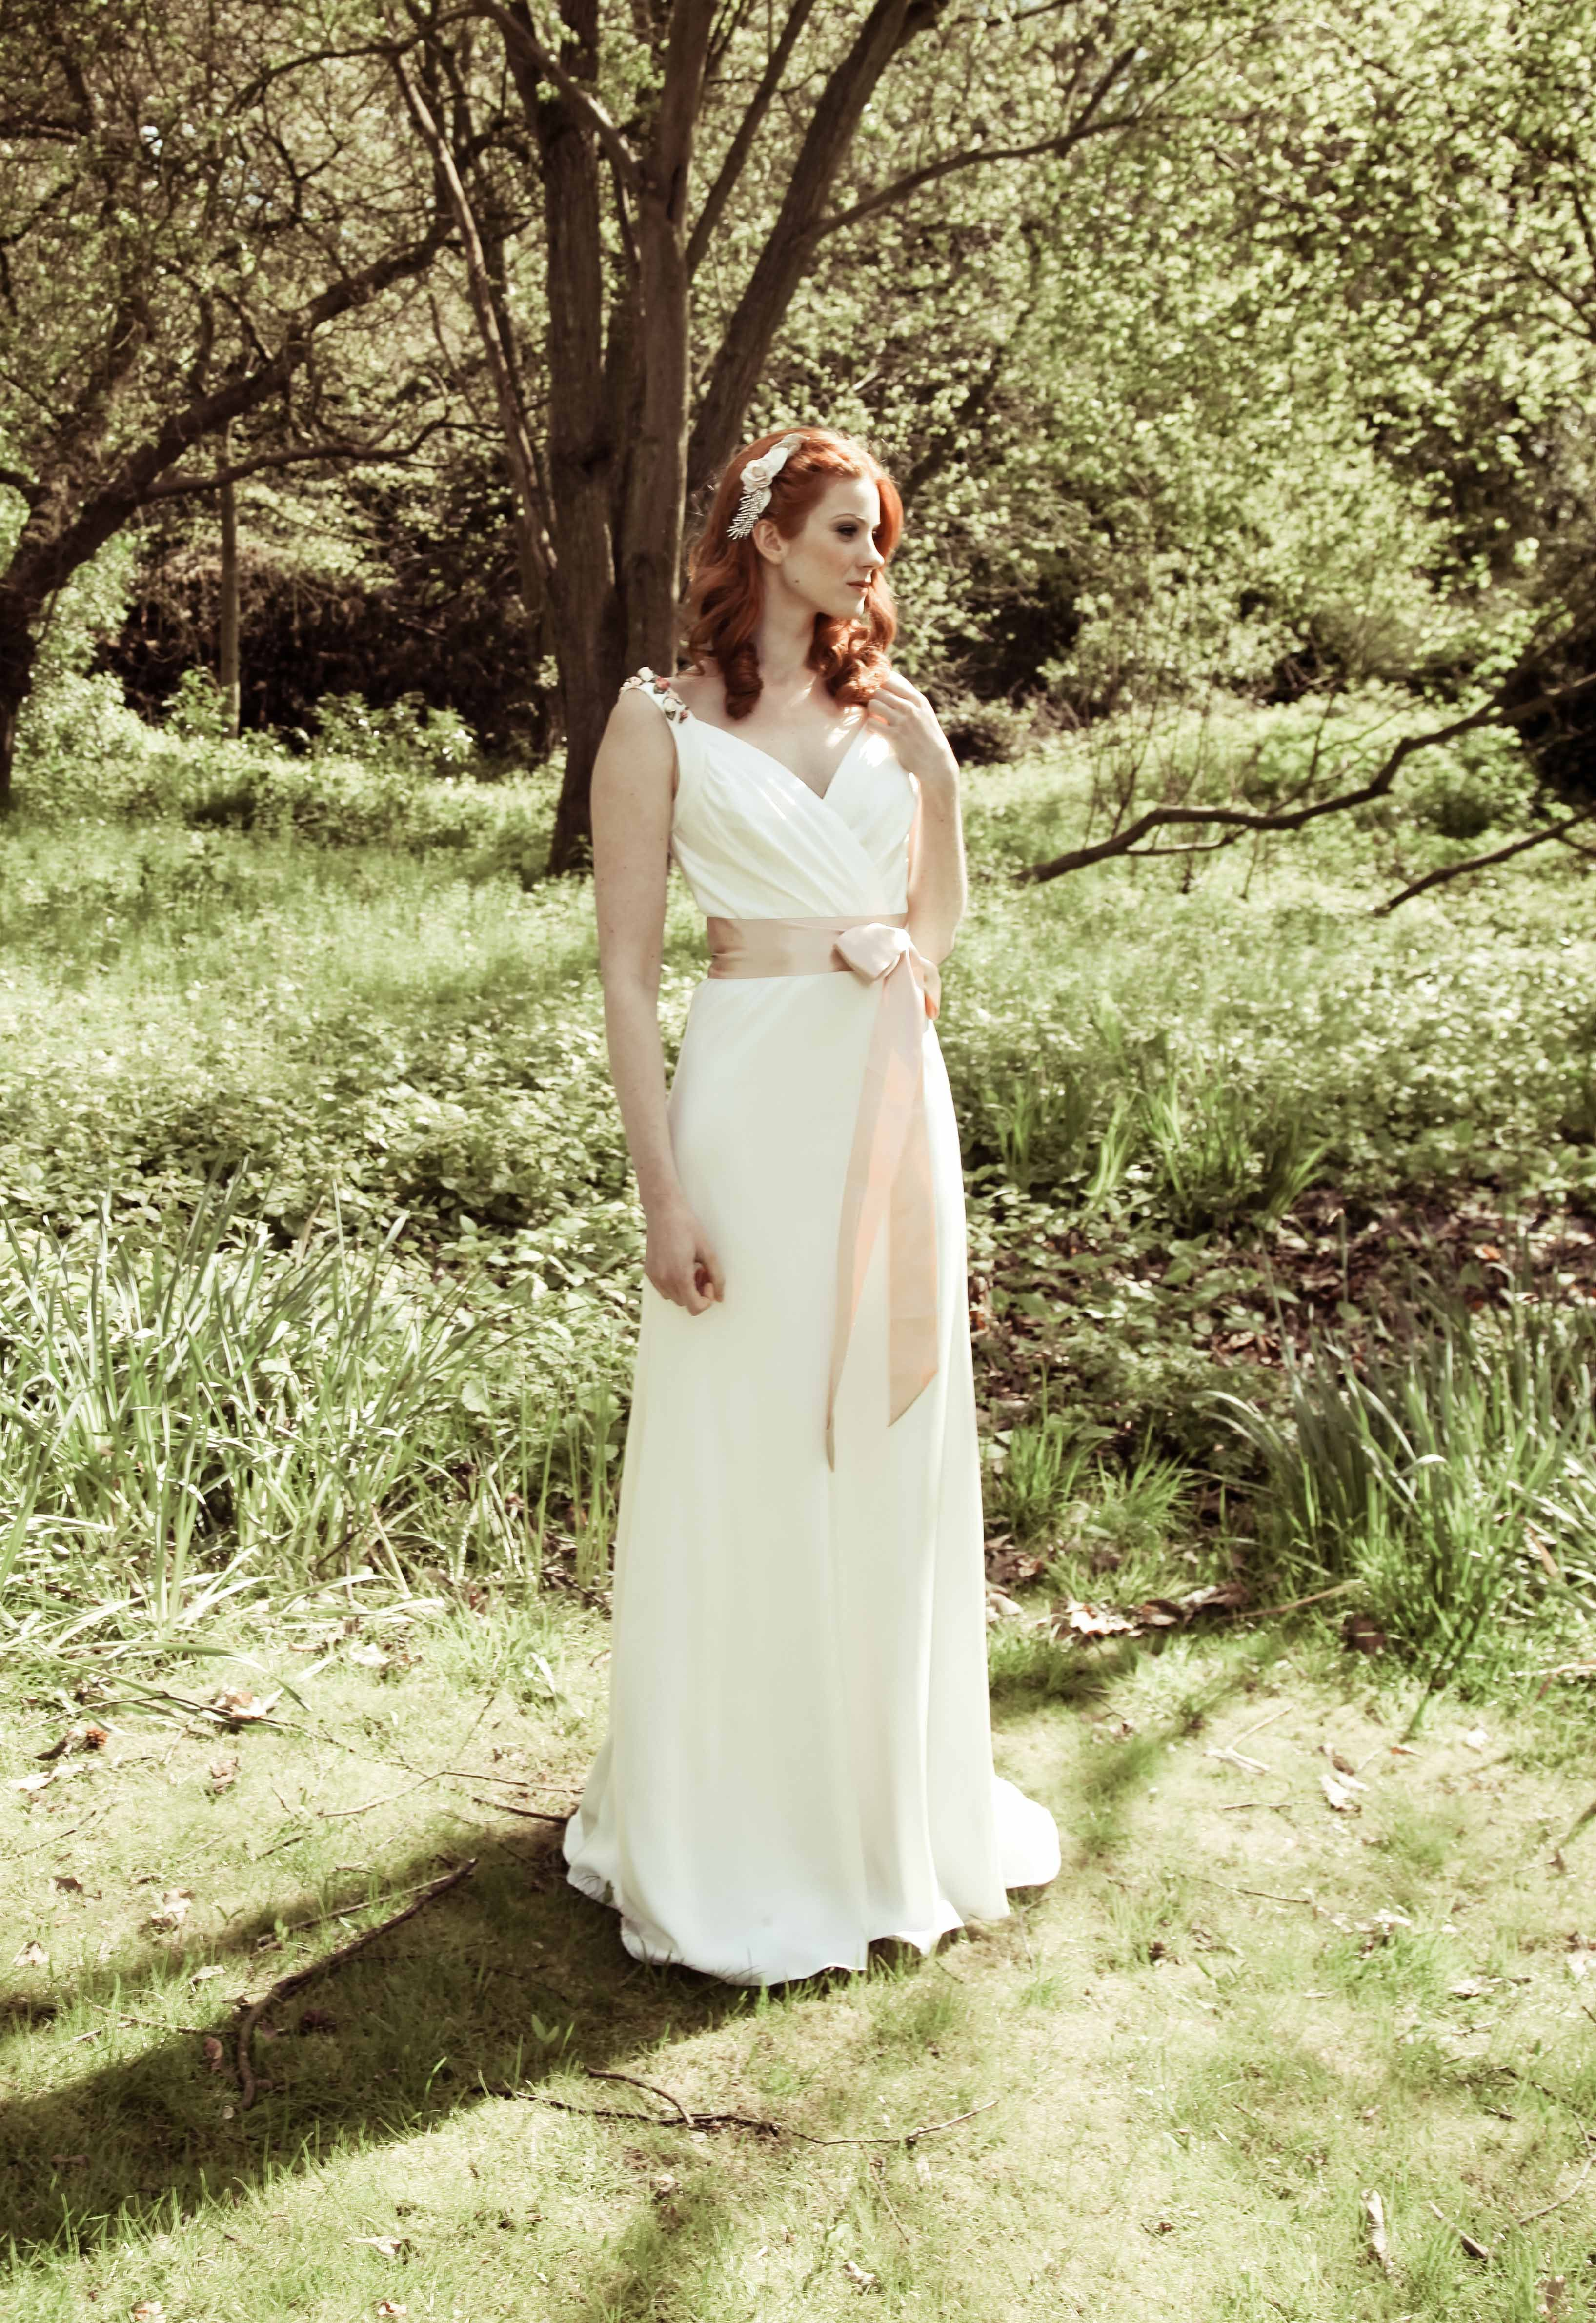 Pheobe. from the Mae Collection by Johanna Hehir. Available at 'The Case of the Curious Bride' boutique.